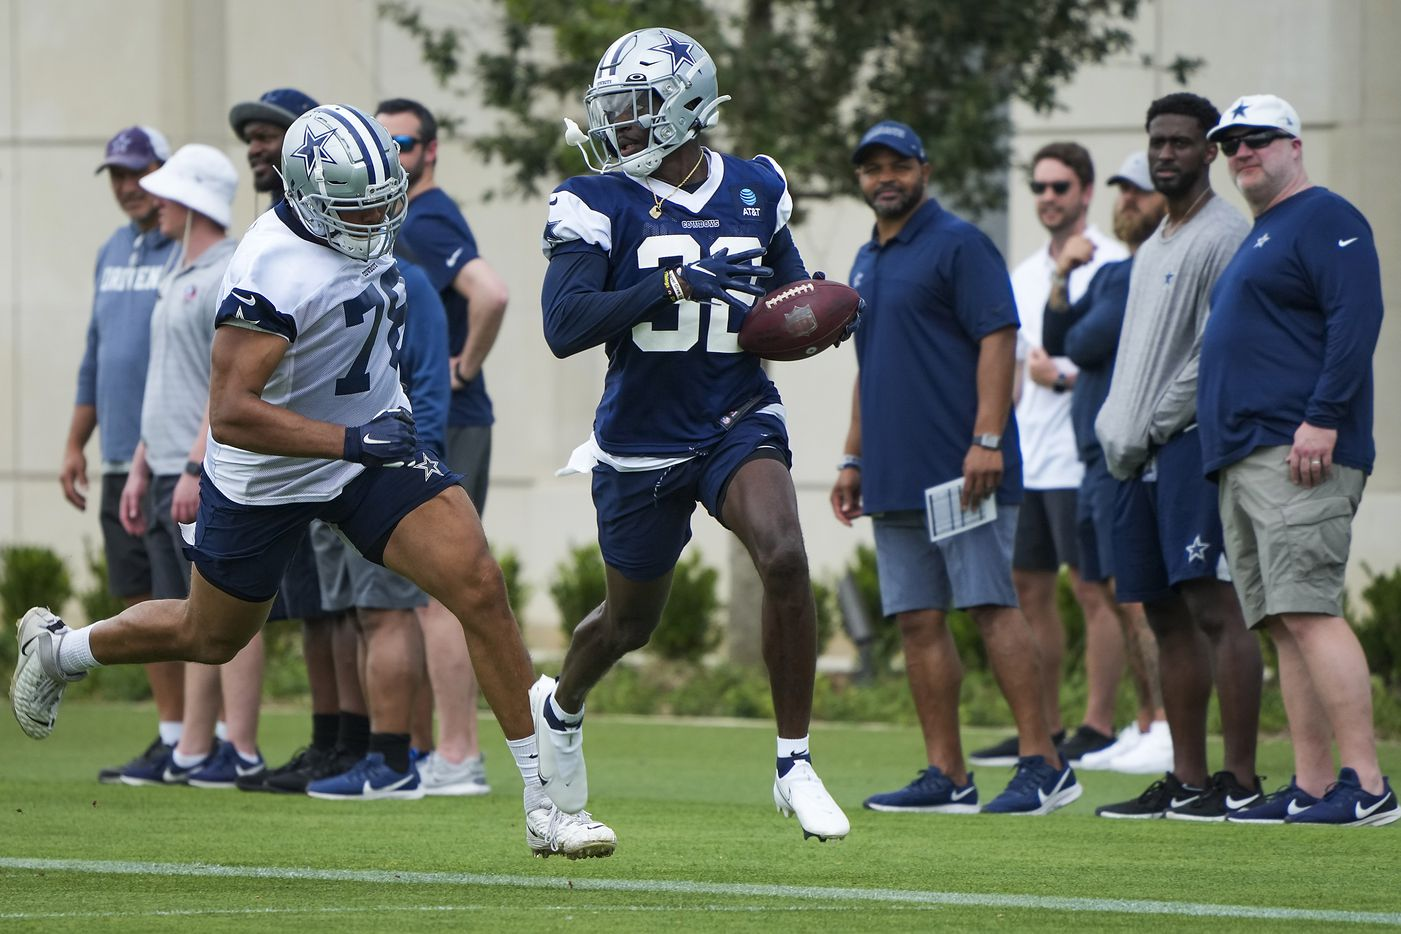 Dallas Cowboys safety Jayron Kearse (32) races past tackle Terence Steele (78) with a turnover during a minicamp practice at The Star on Wednesday, June 9, 2021, in Frisco. (Smiley N. Pool/The Dallas Morning News)